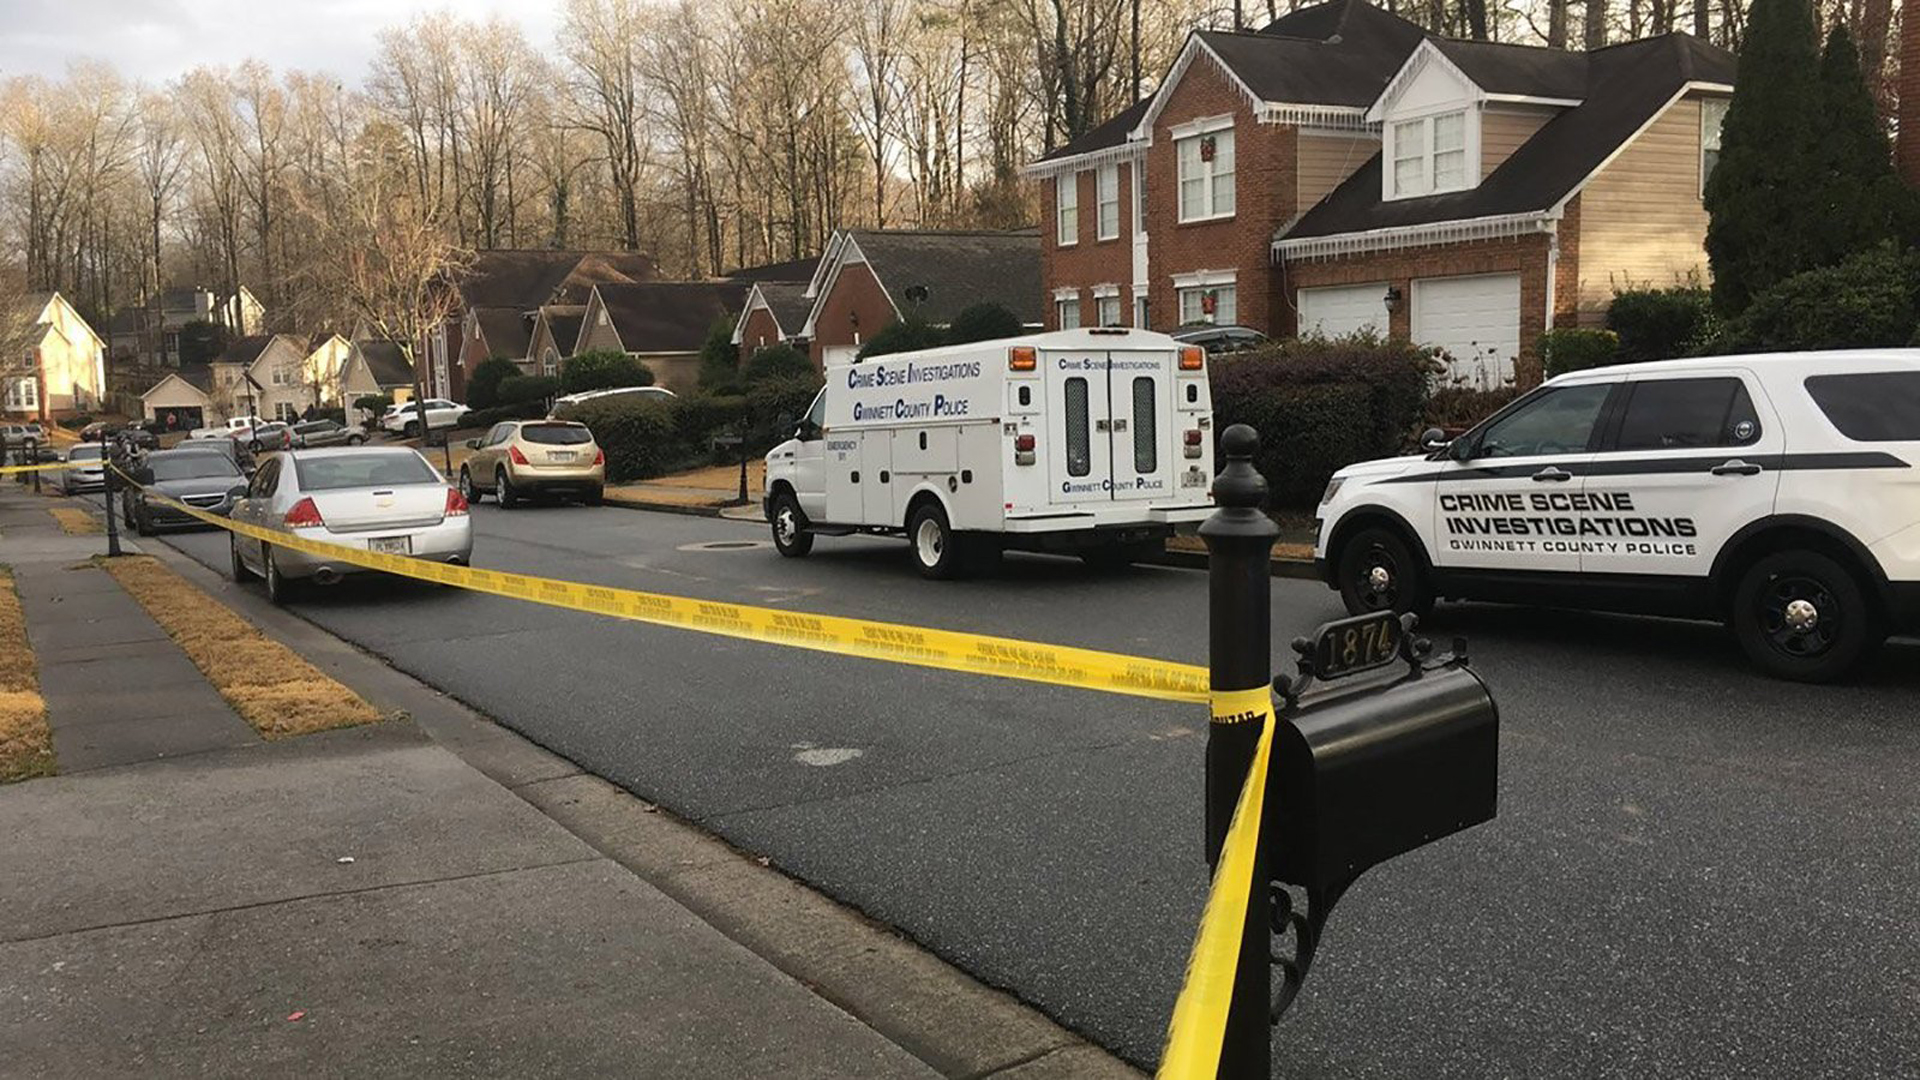 A 15-year-old took his own life after accidentally shooting and killing his friend on New Year's Eve, police in suburban Atlanta said. (Credit: Gwinnett County Police Dept.)